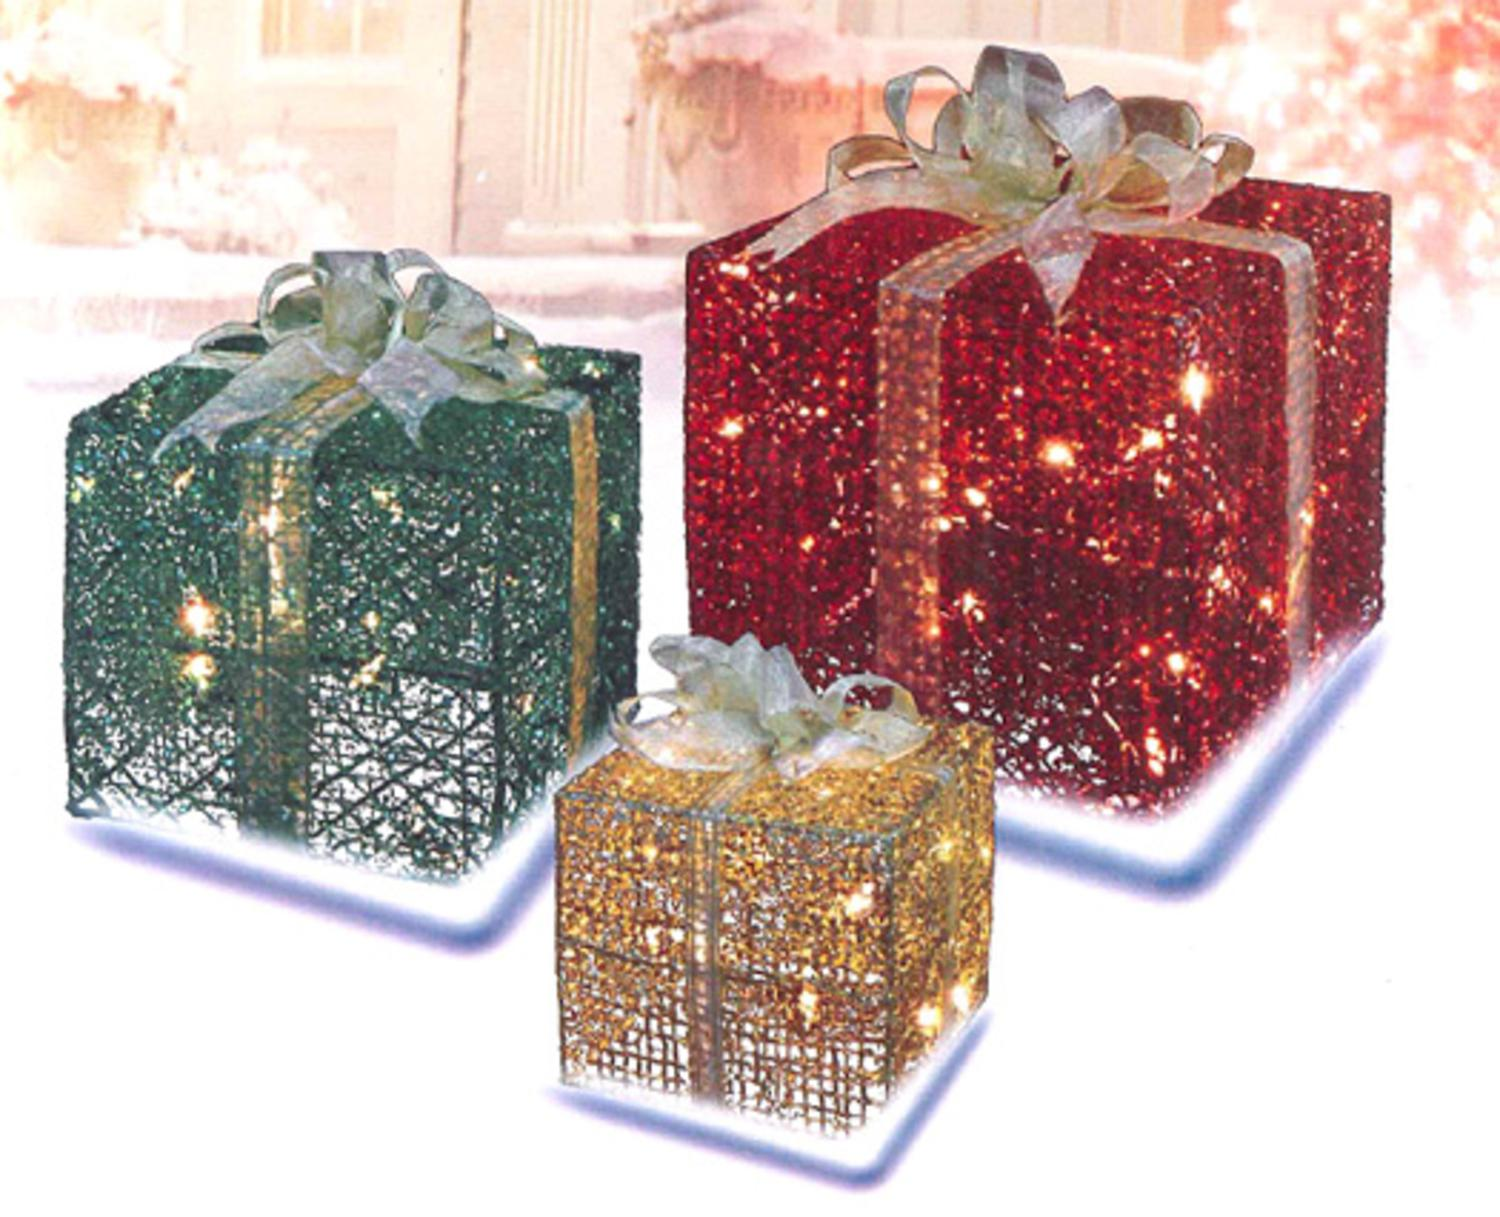 3 piece glittery red green gold gift box lighted christmas yard art set walmartcom - Outdoor Lighted Presents Christmas Decorations